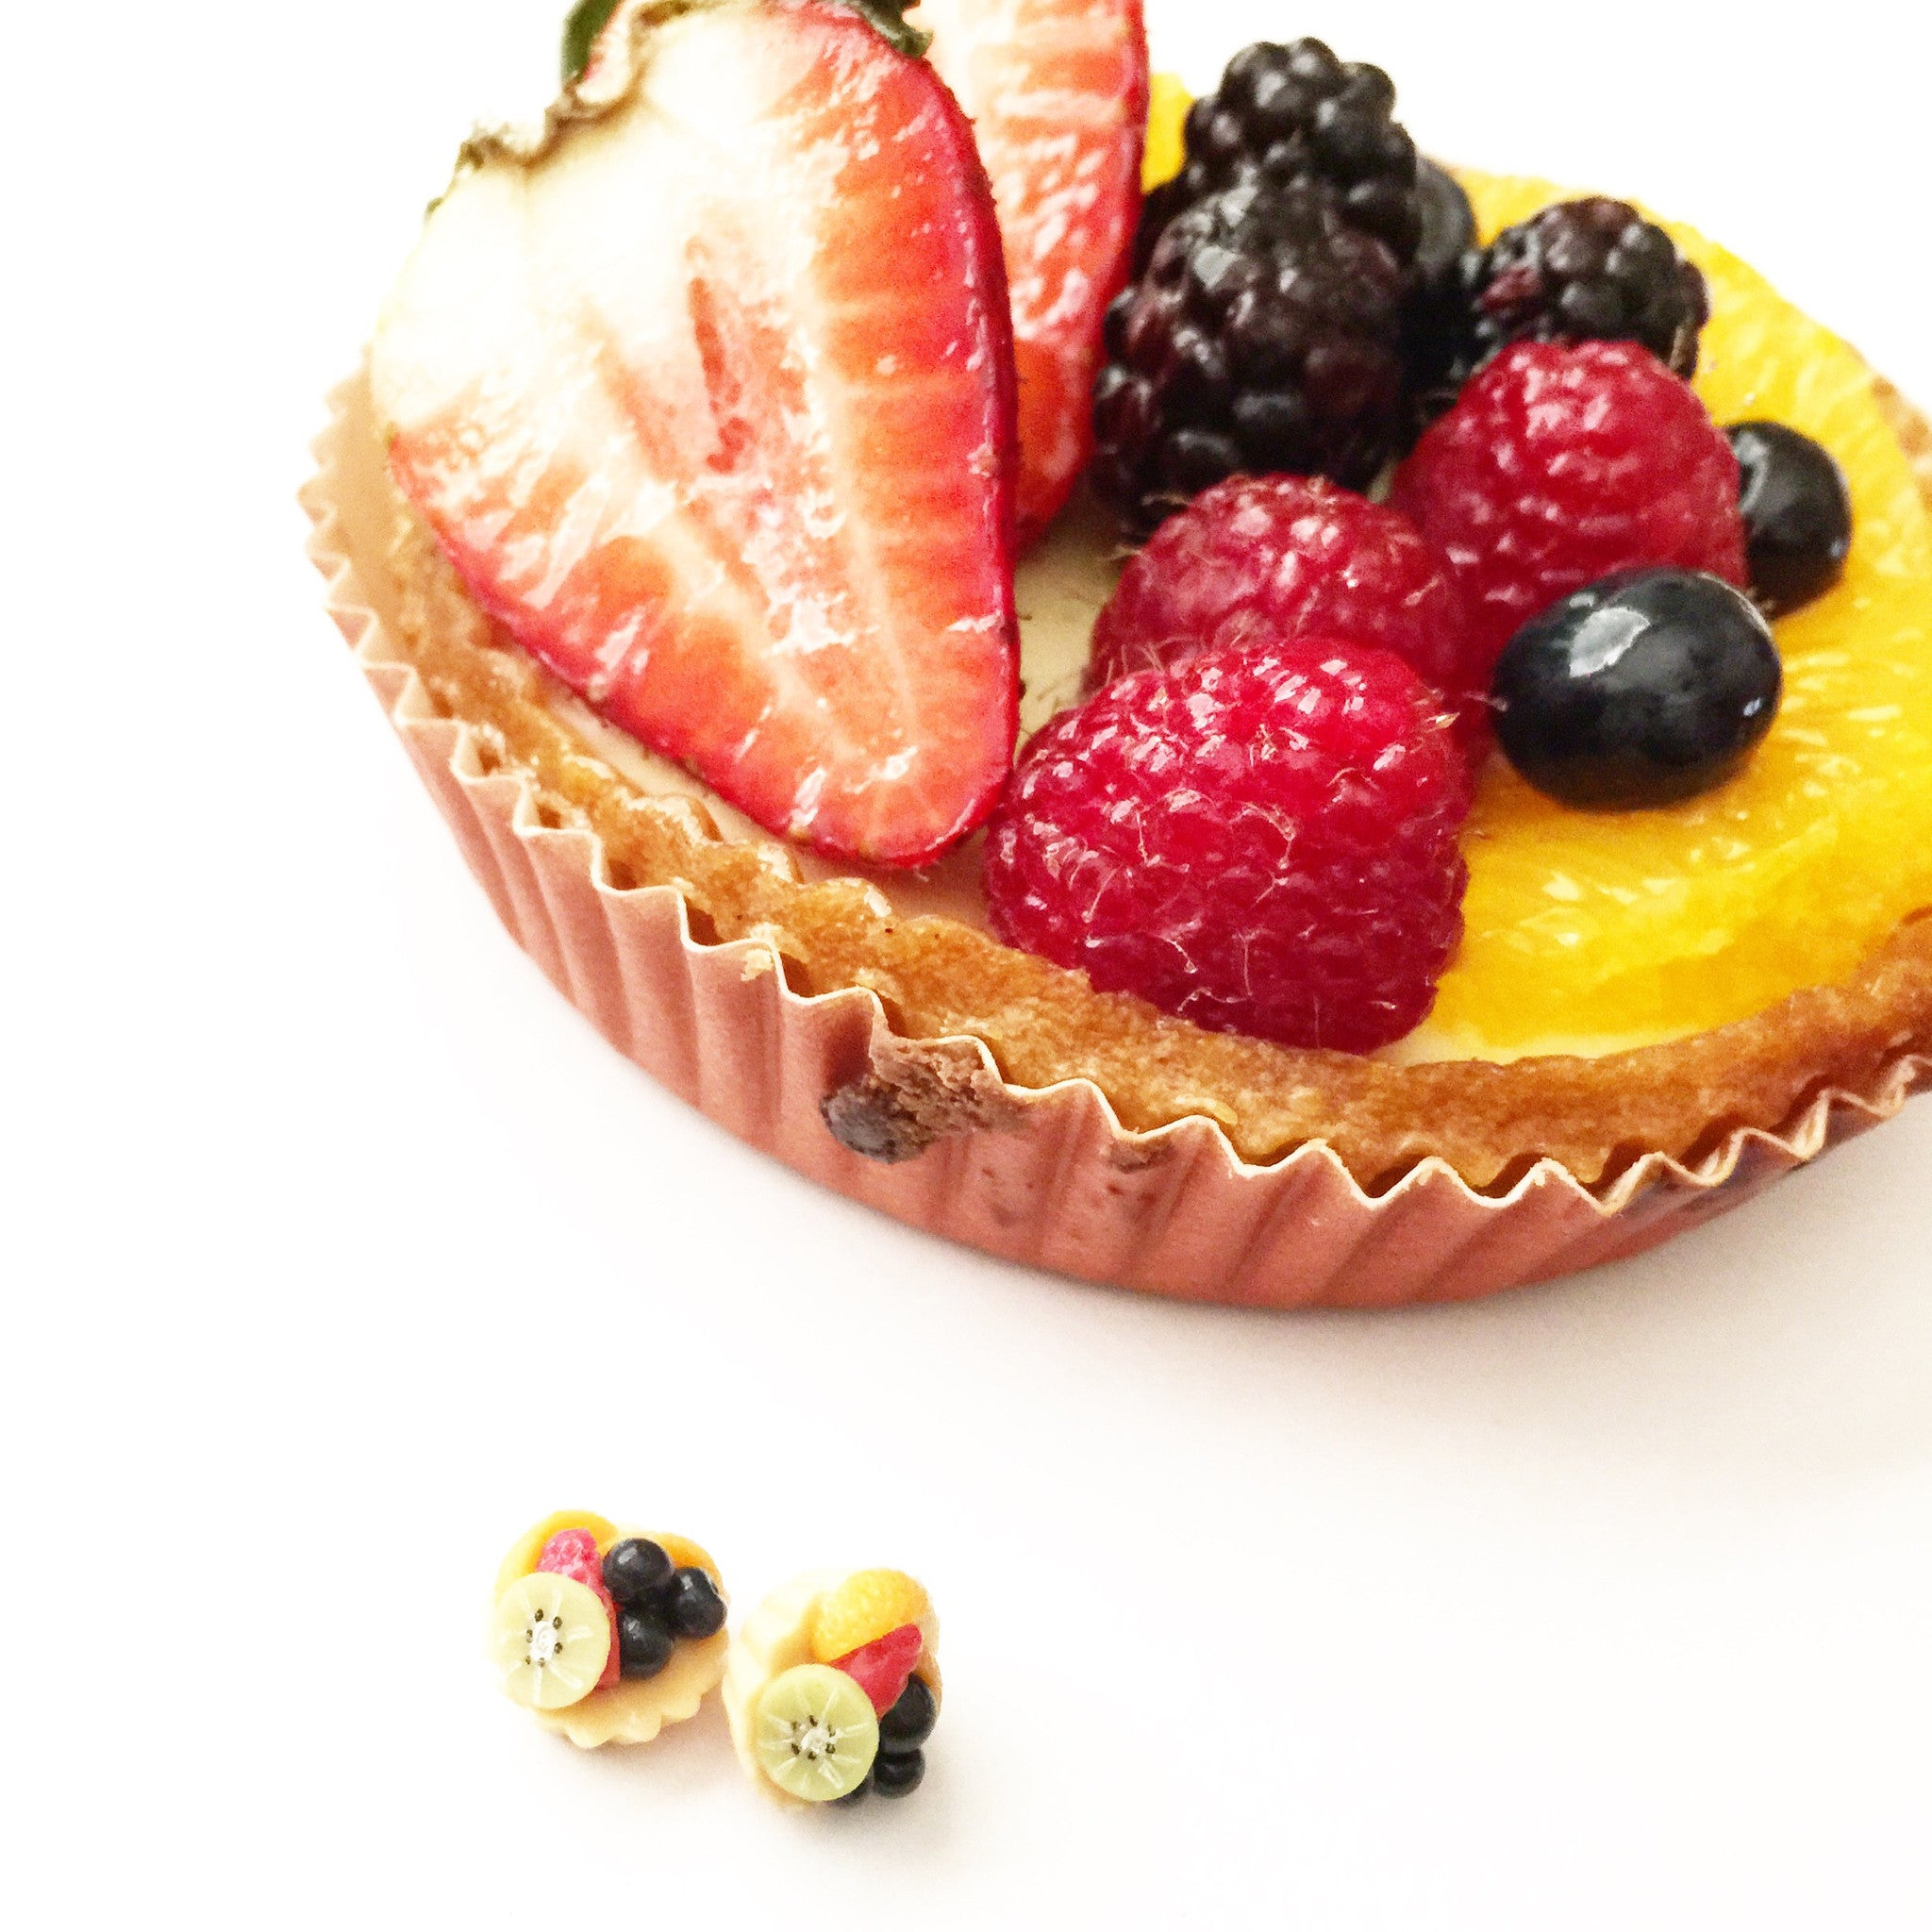 fruit tart earrings - Jillicious charms and accessories